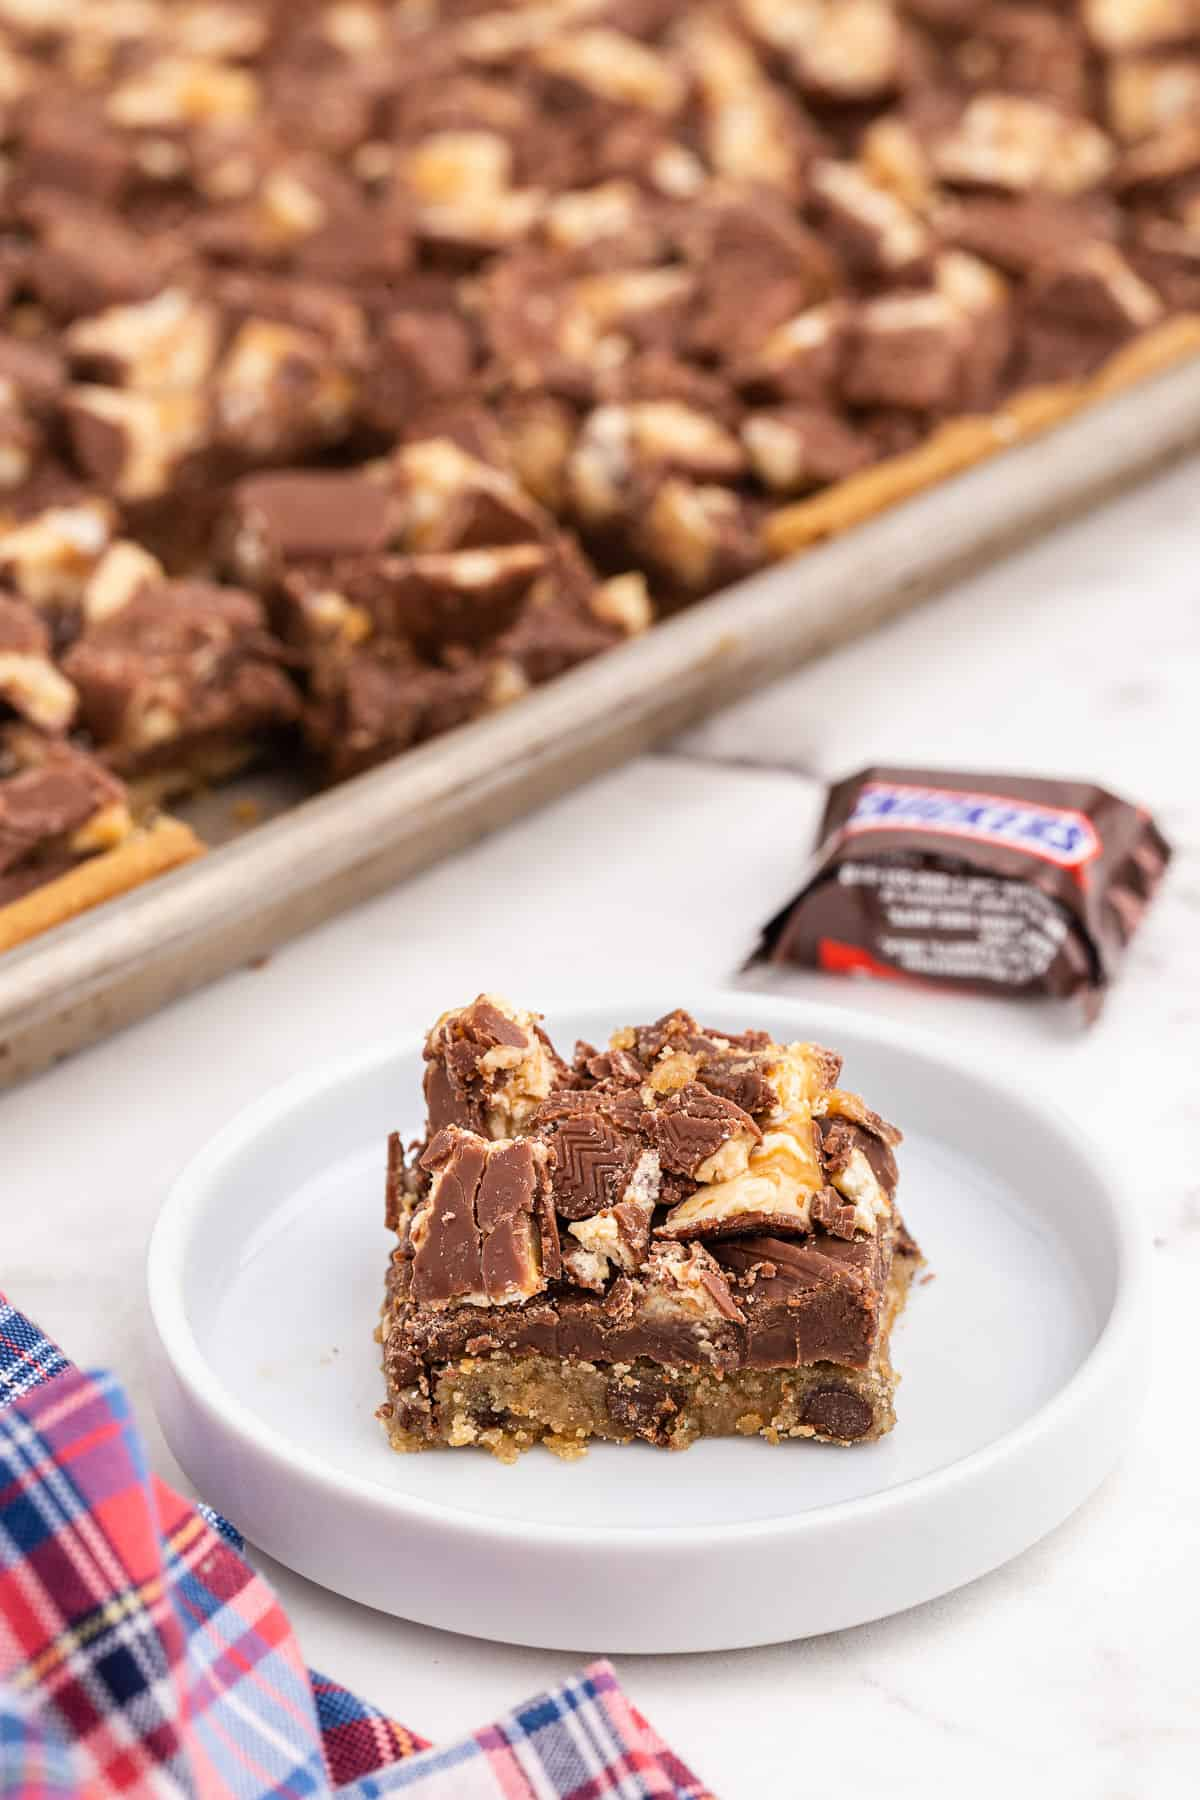 Slice of chocolate chip snicker's cookie bar on a white plate.